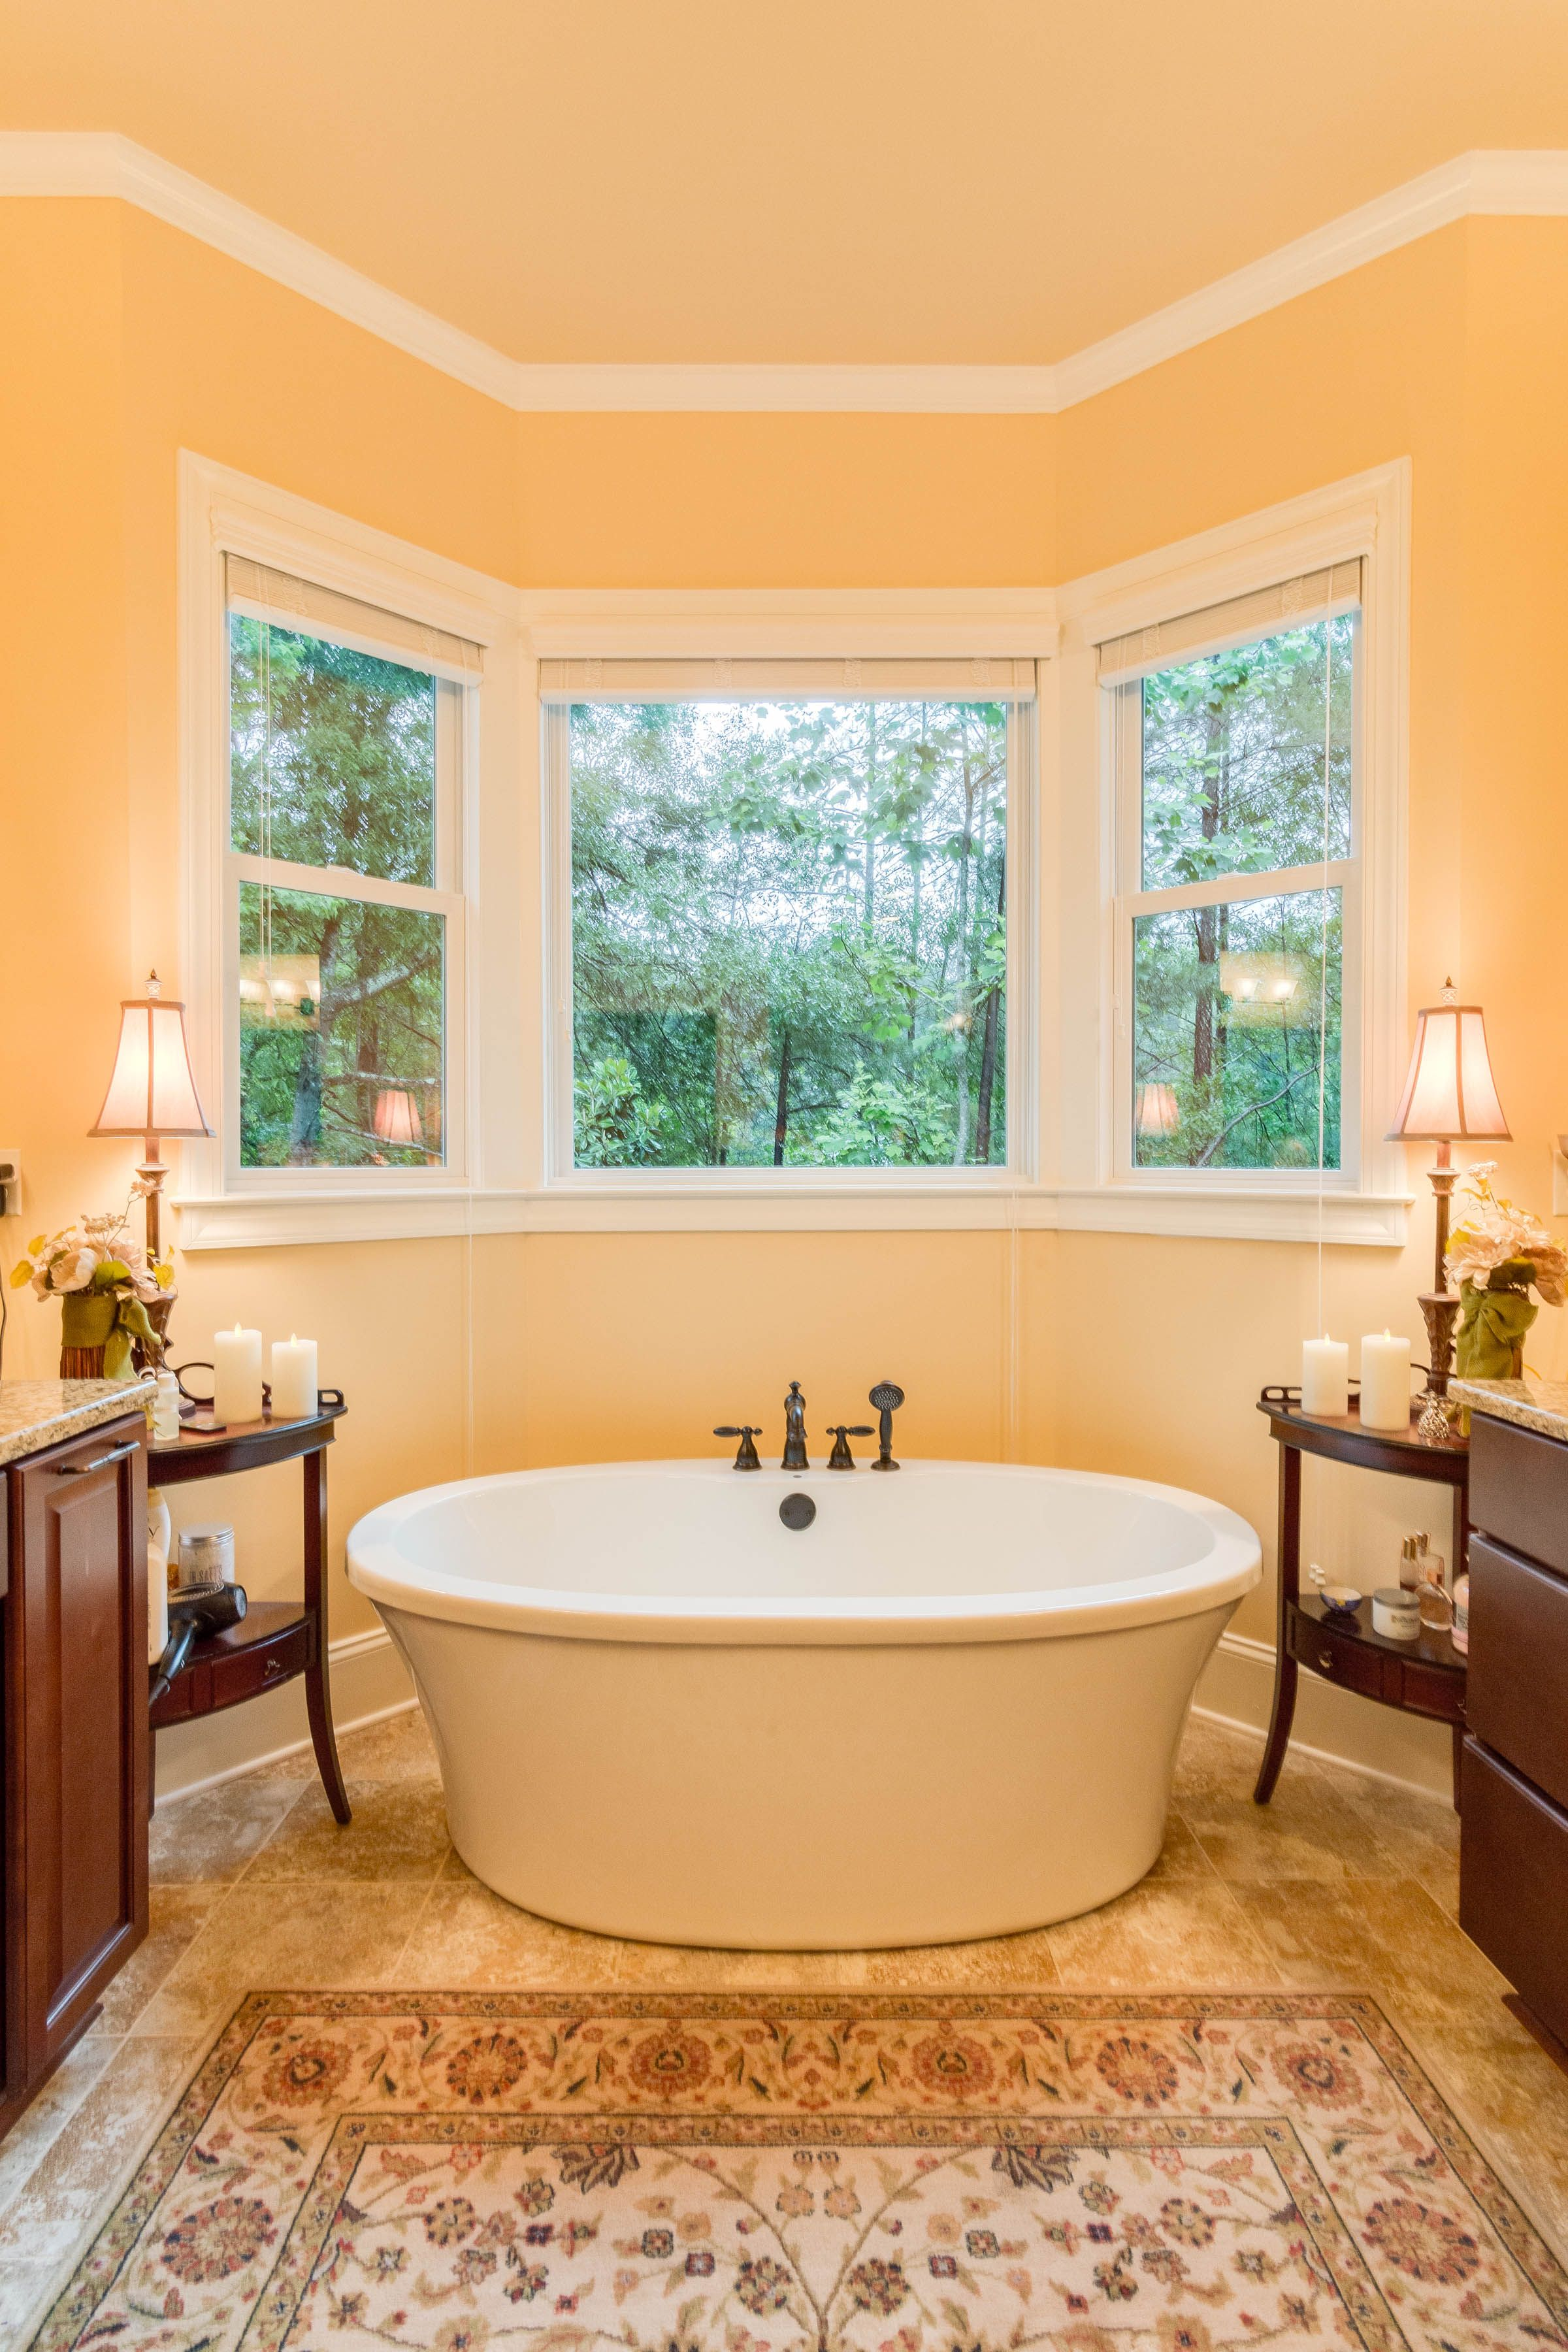 north georgia replacement windows roswell ga infinity from marvin replacement windows by north georgia windows bathroom with picture window and casement windows windows mad